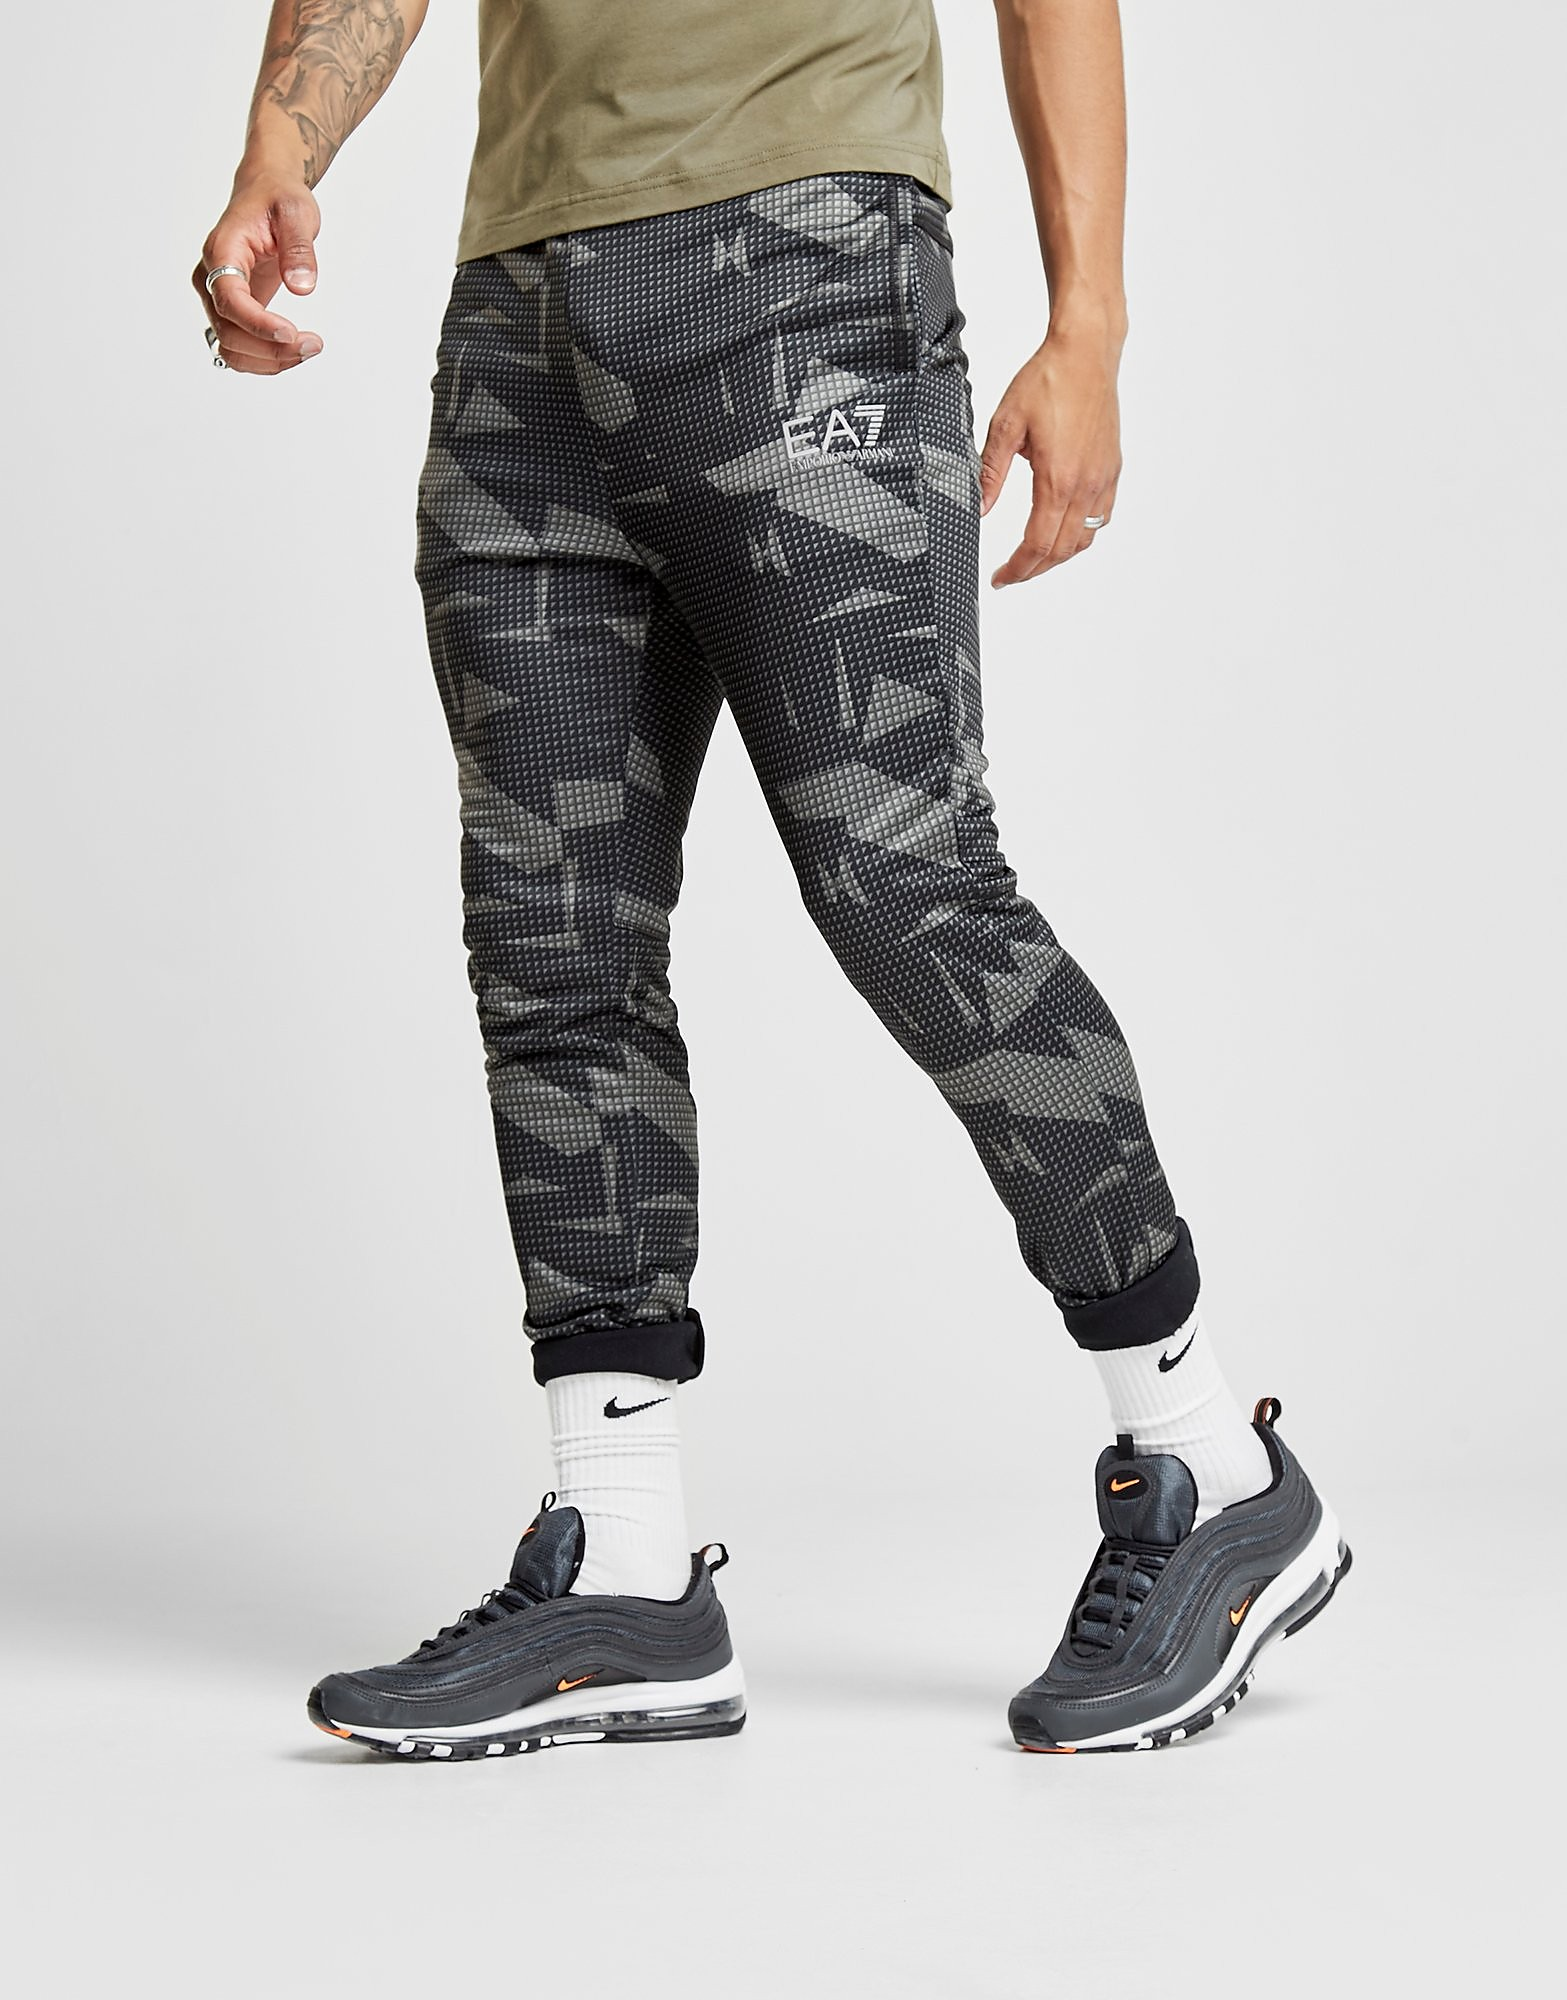 Emporio Armani EA7 Poly Tech Vigor Pants